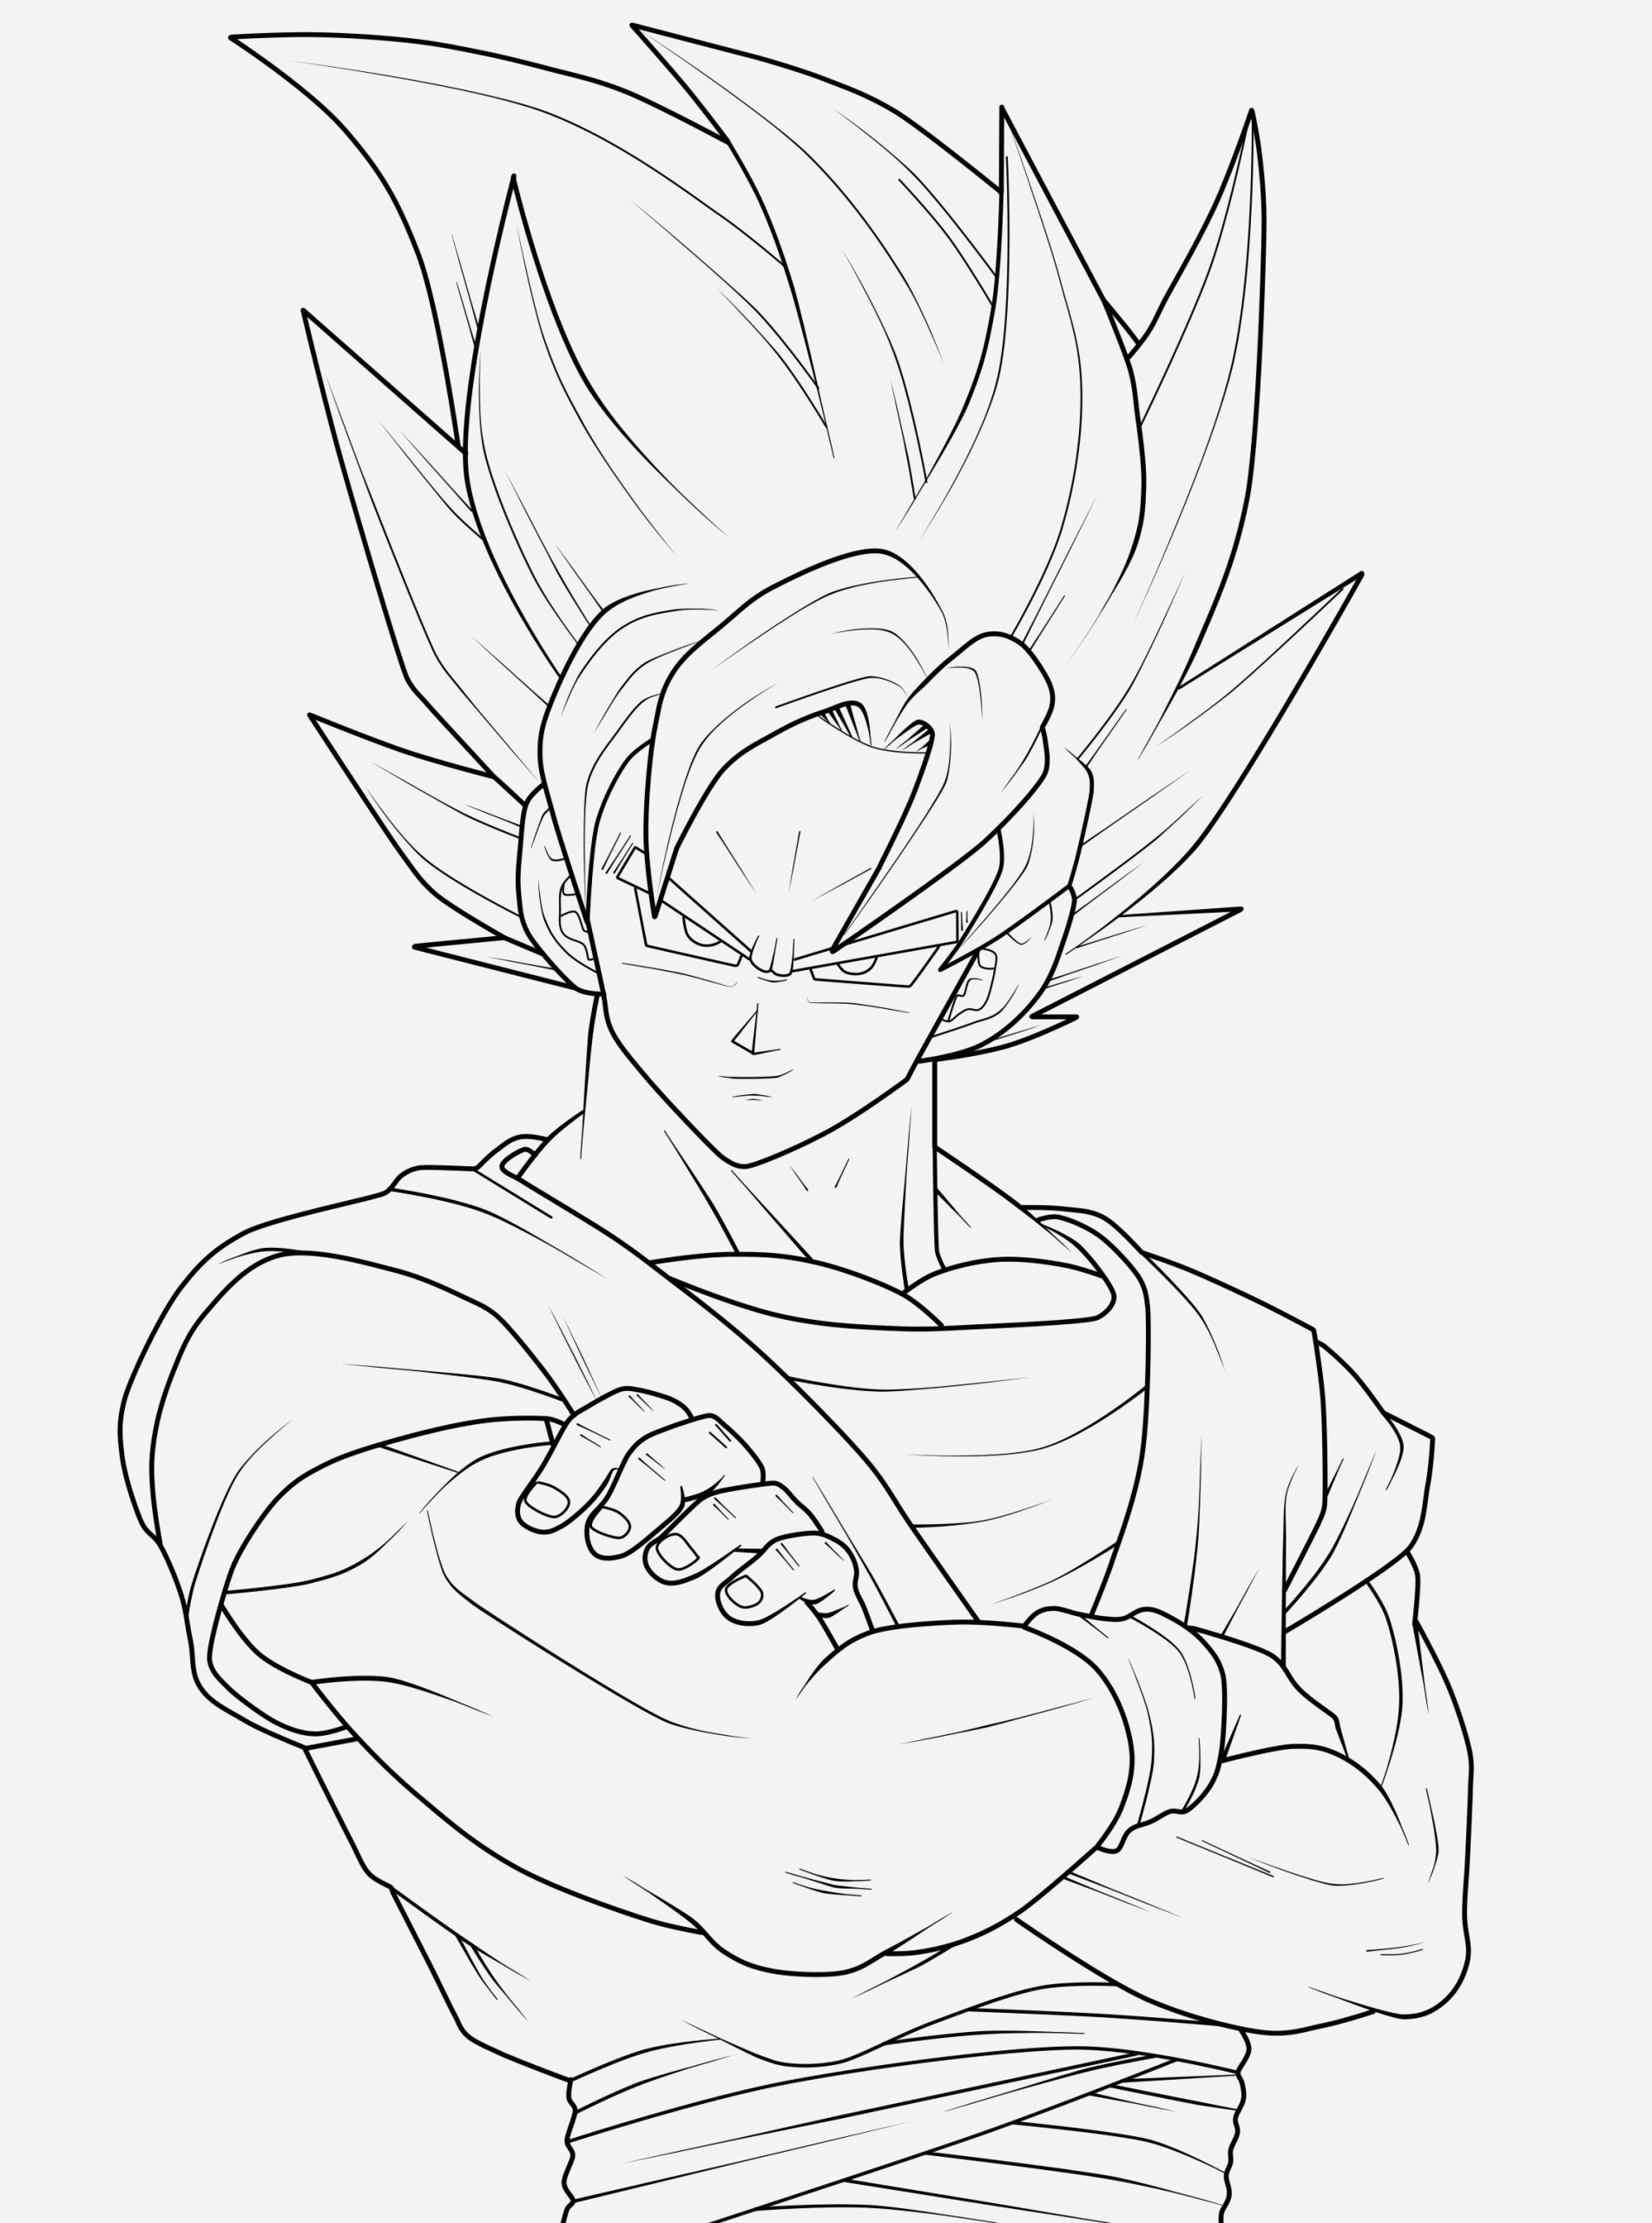 Coloriage Dragon Ball Z Super Luxury Dbz Coloring Pages at Getdrawings Of Coloriage Dragon Ball Z Super